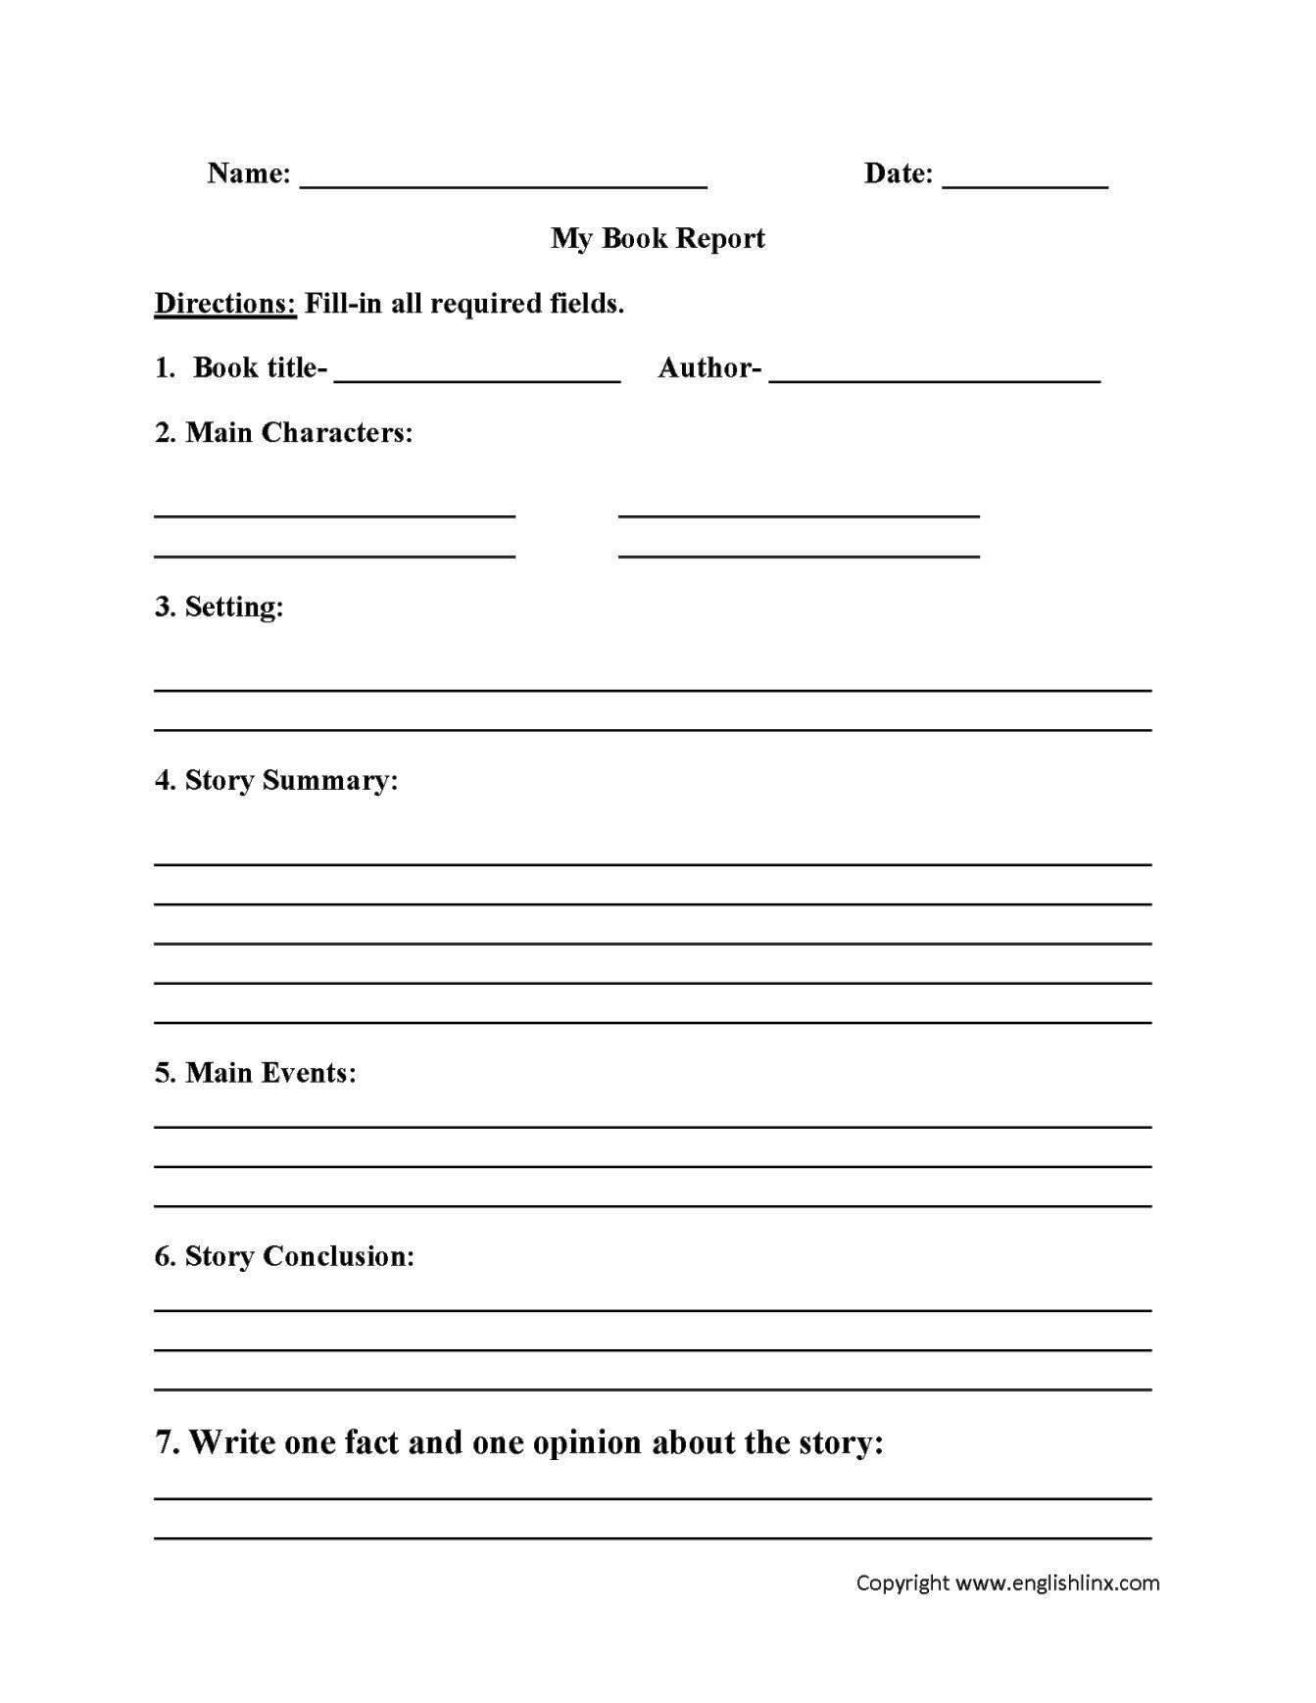 Student Book Review Template